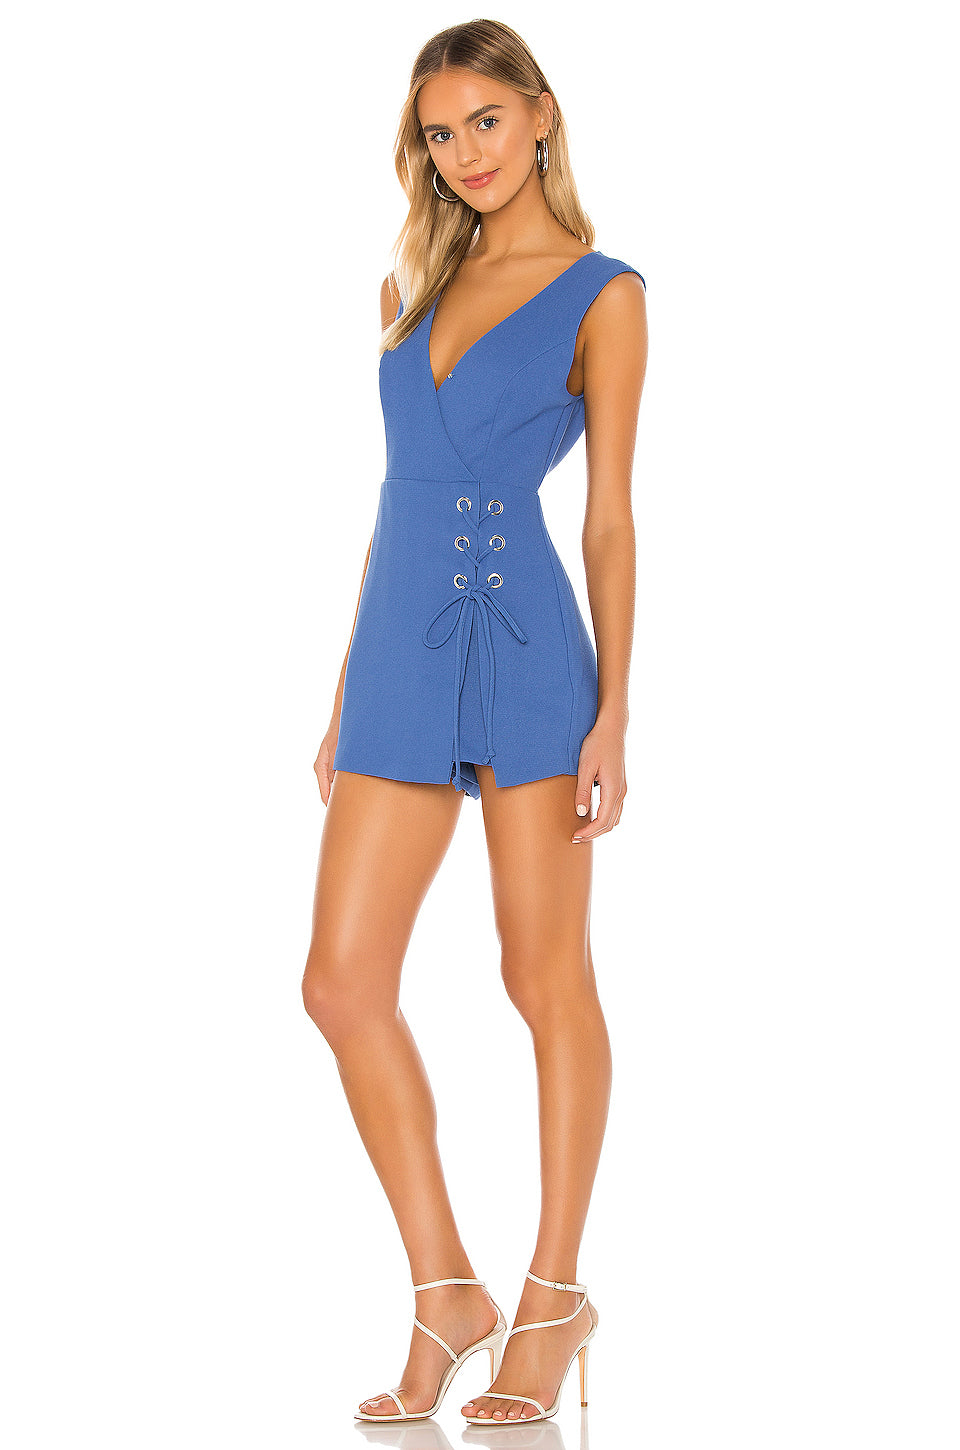 Lace Up Skort Romper in Blue